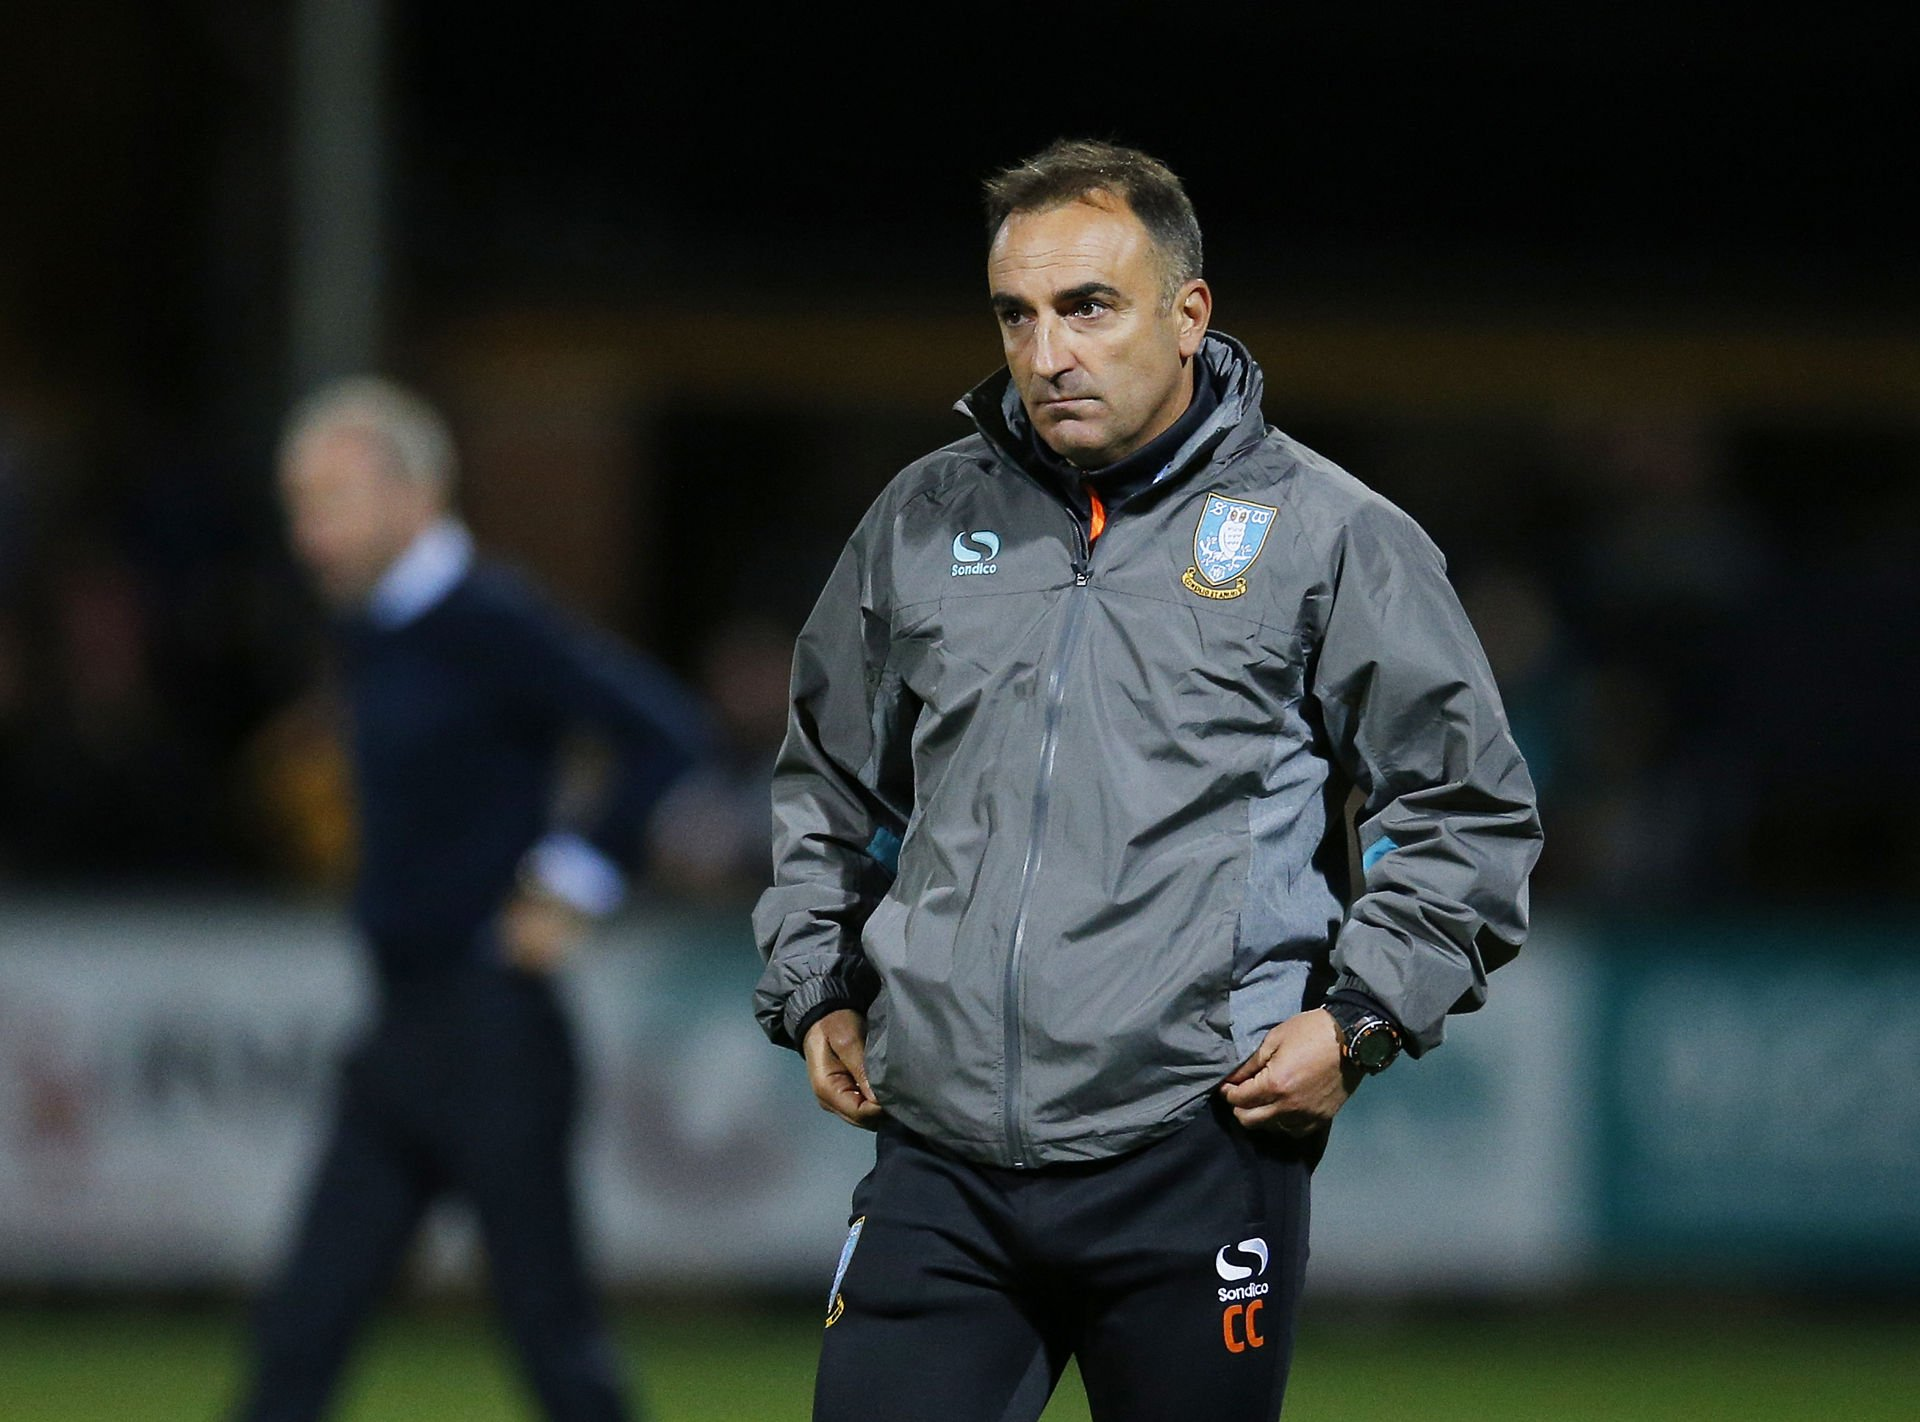 sheffield wednesday manager carlos carvalhal looks dejected at t 271744